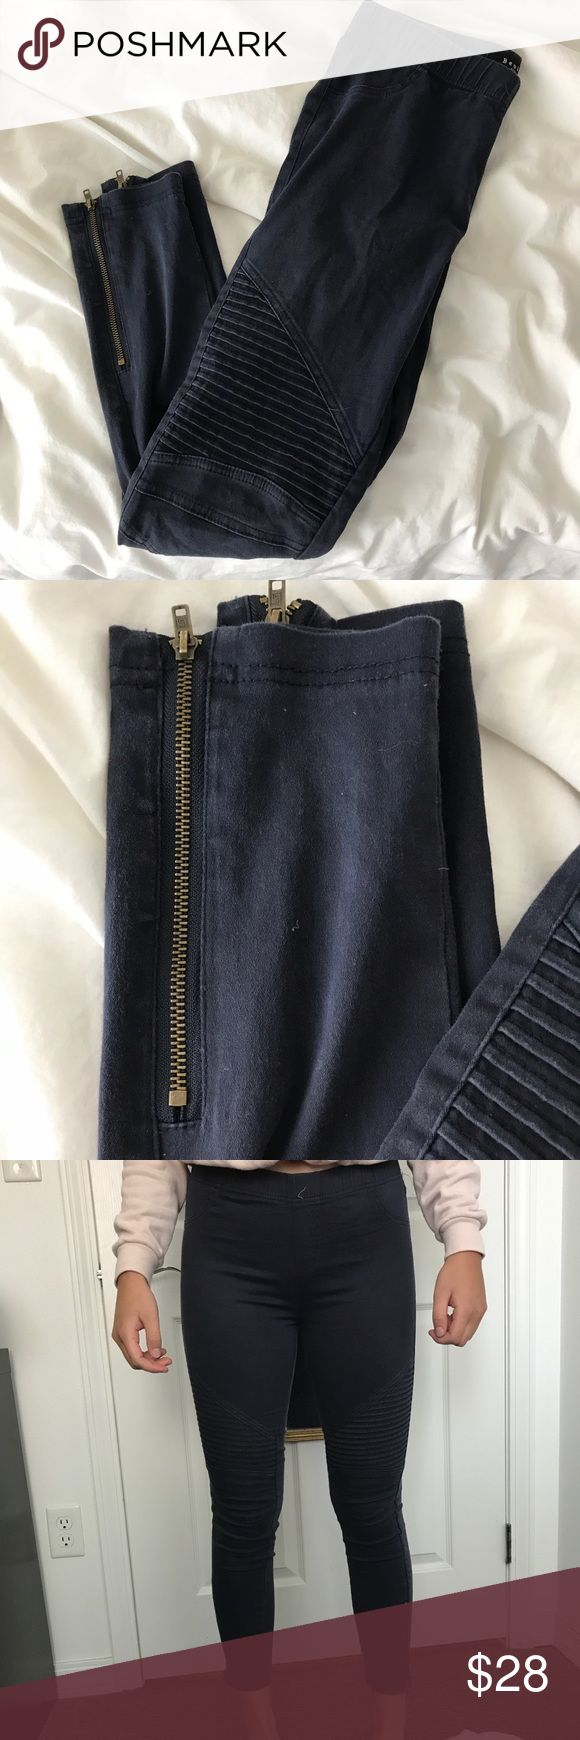 LIKE NEW Motto Legging in Navy Only worn once, perfect condition, too small on me and that's why I'm selling! Cutest zipper and knee detail! Make me an offer! Urban Outfitters Pants Leggings